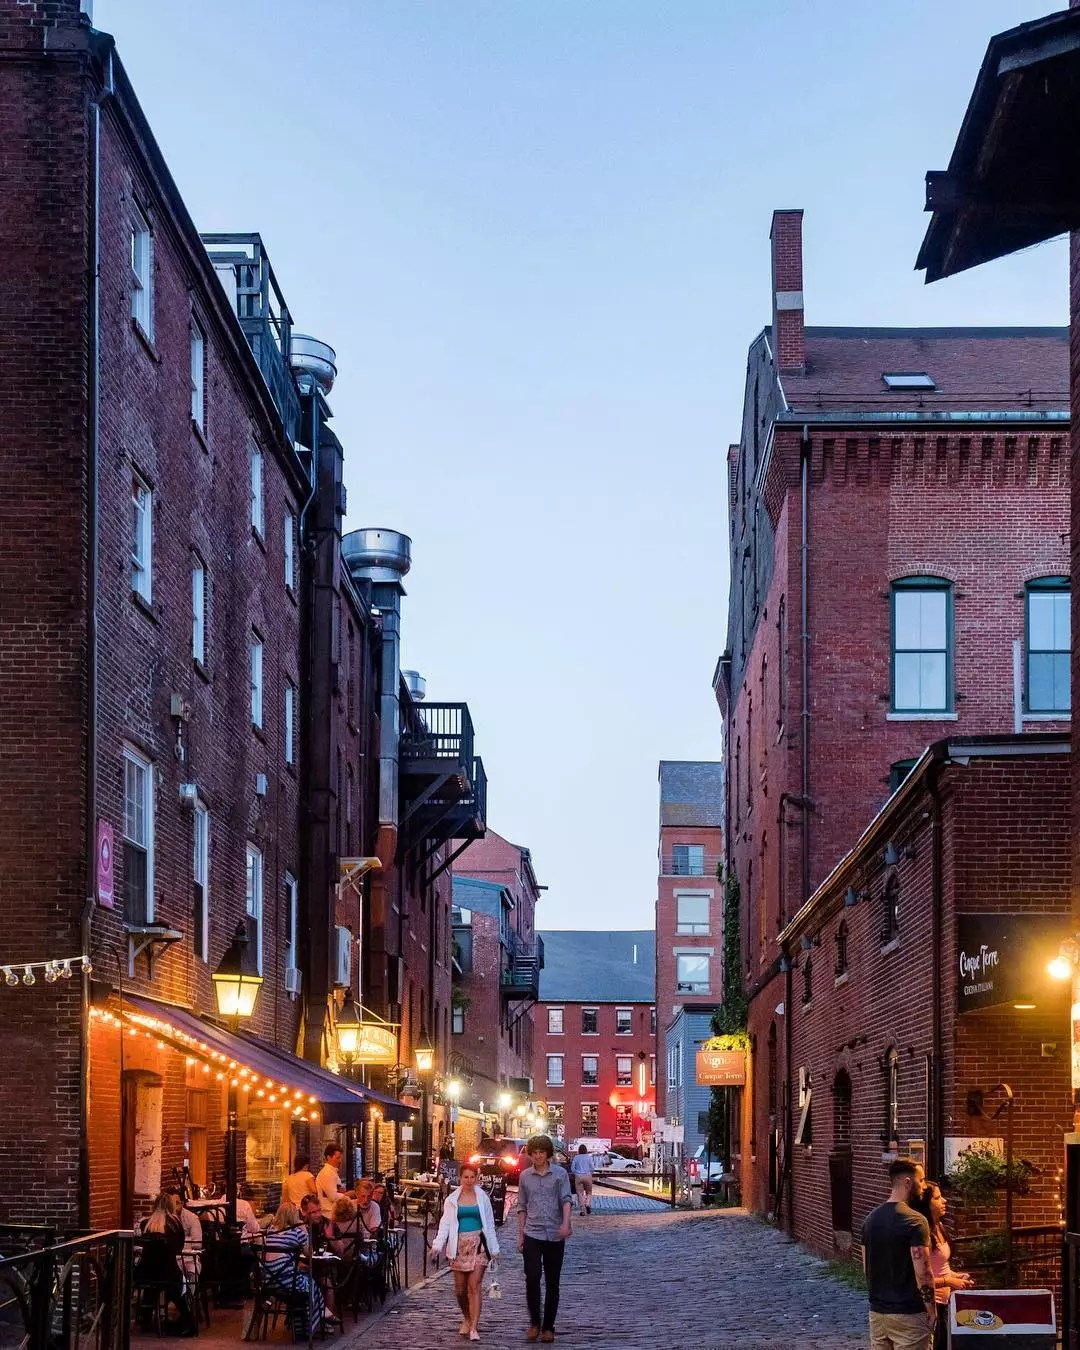 Brick buildings in Downtown Portland, ME. Photo by Instagram user @pfephoto